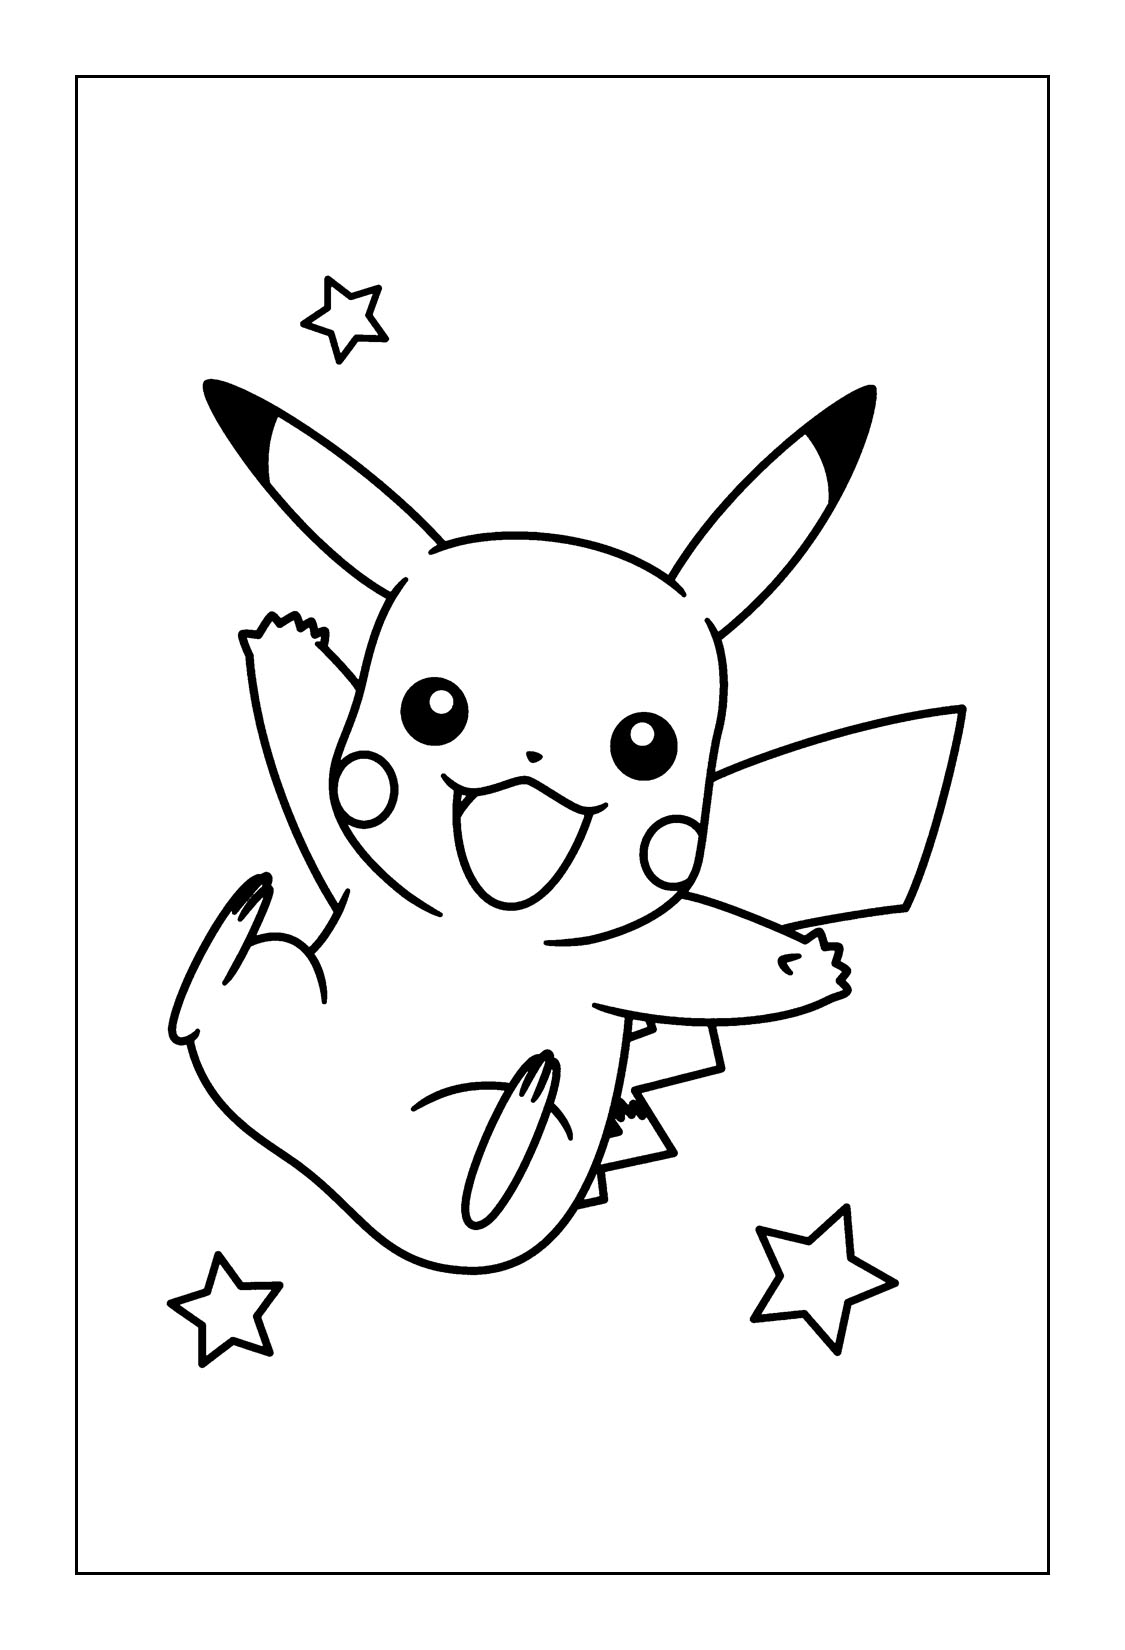 free m&m coloring pages | Pikachu Coloring Pages – coloring.rocks!